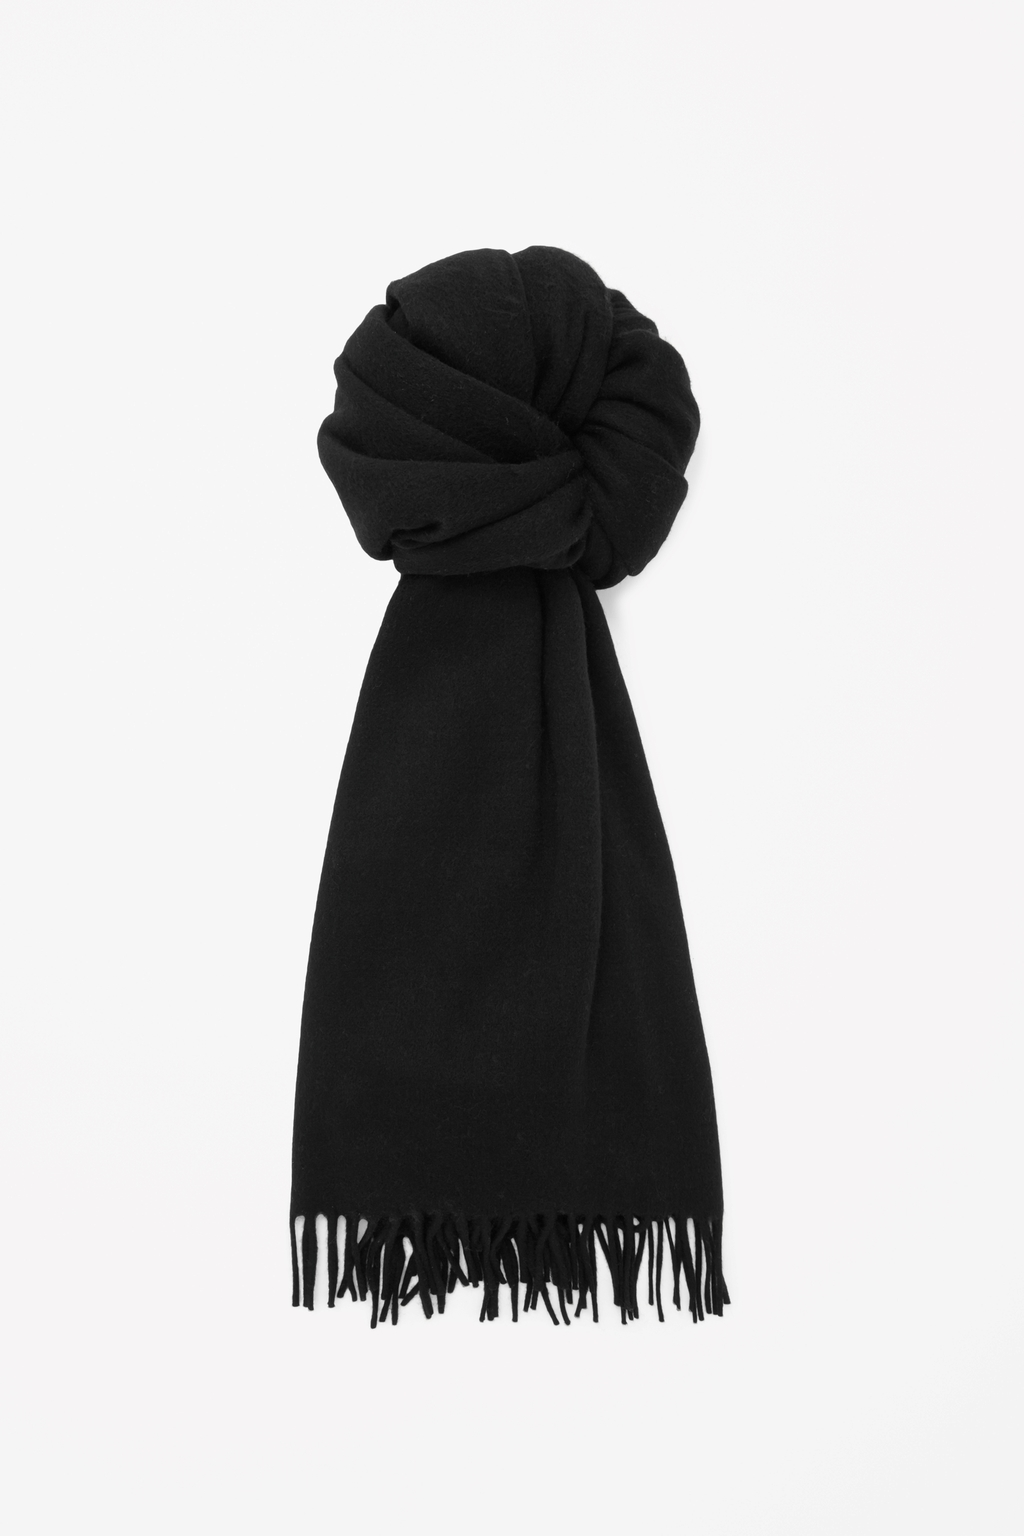 Oversized Wool Scarf - predominant colour: black; occasions: casual, creative work; type of pattern: standard; style: regular; size: large; material: fabric; embellishment: fringing; pattern: plain; season: s/s 2015